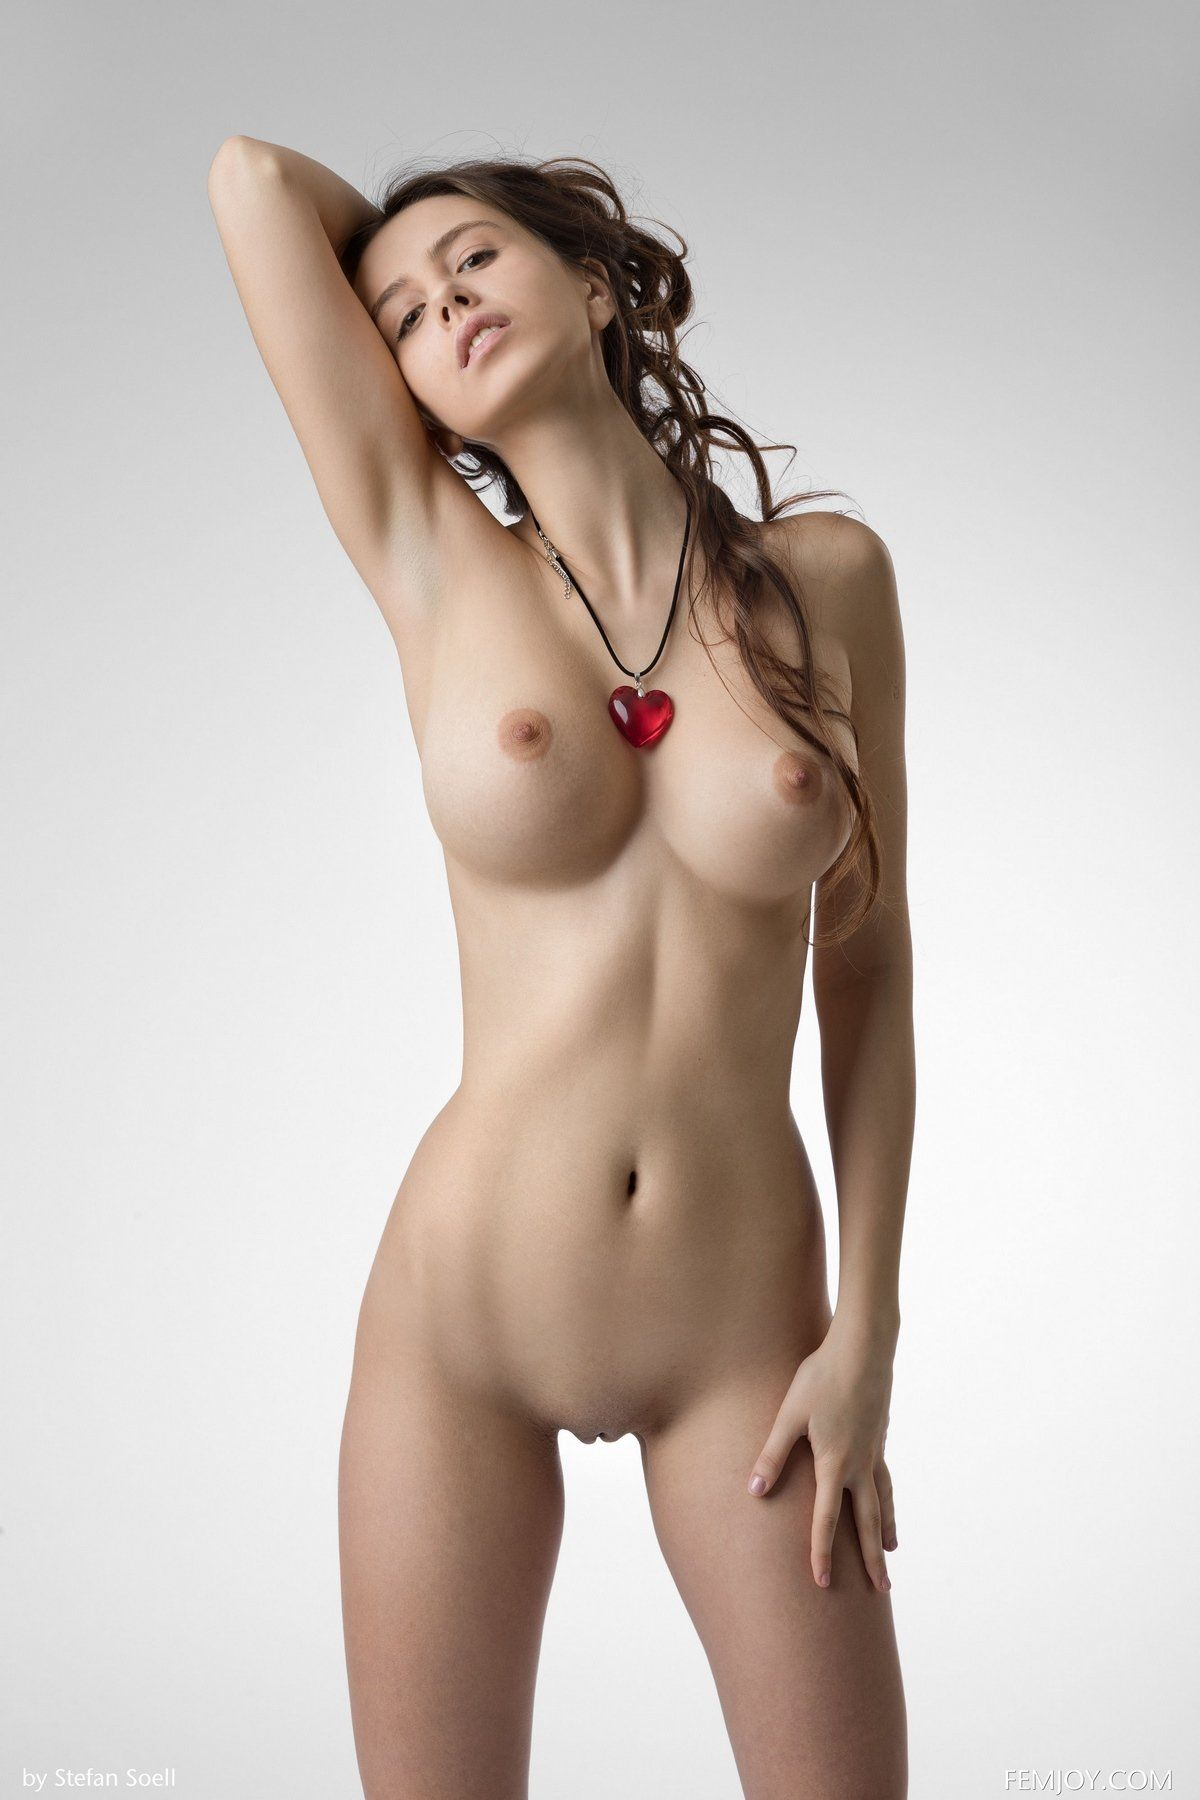 Beautiful Naked Girls And Nude Models